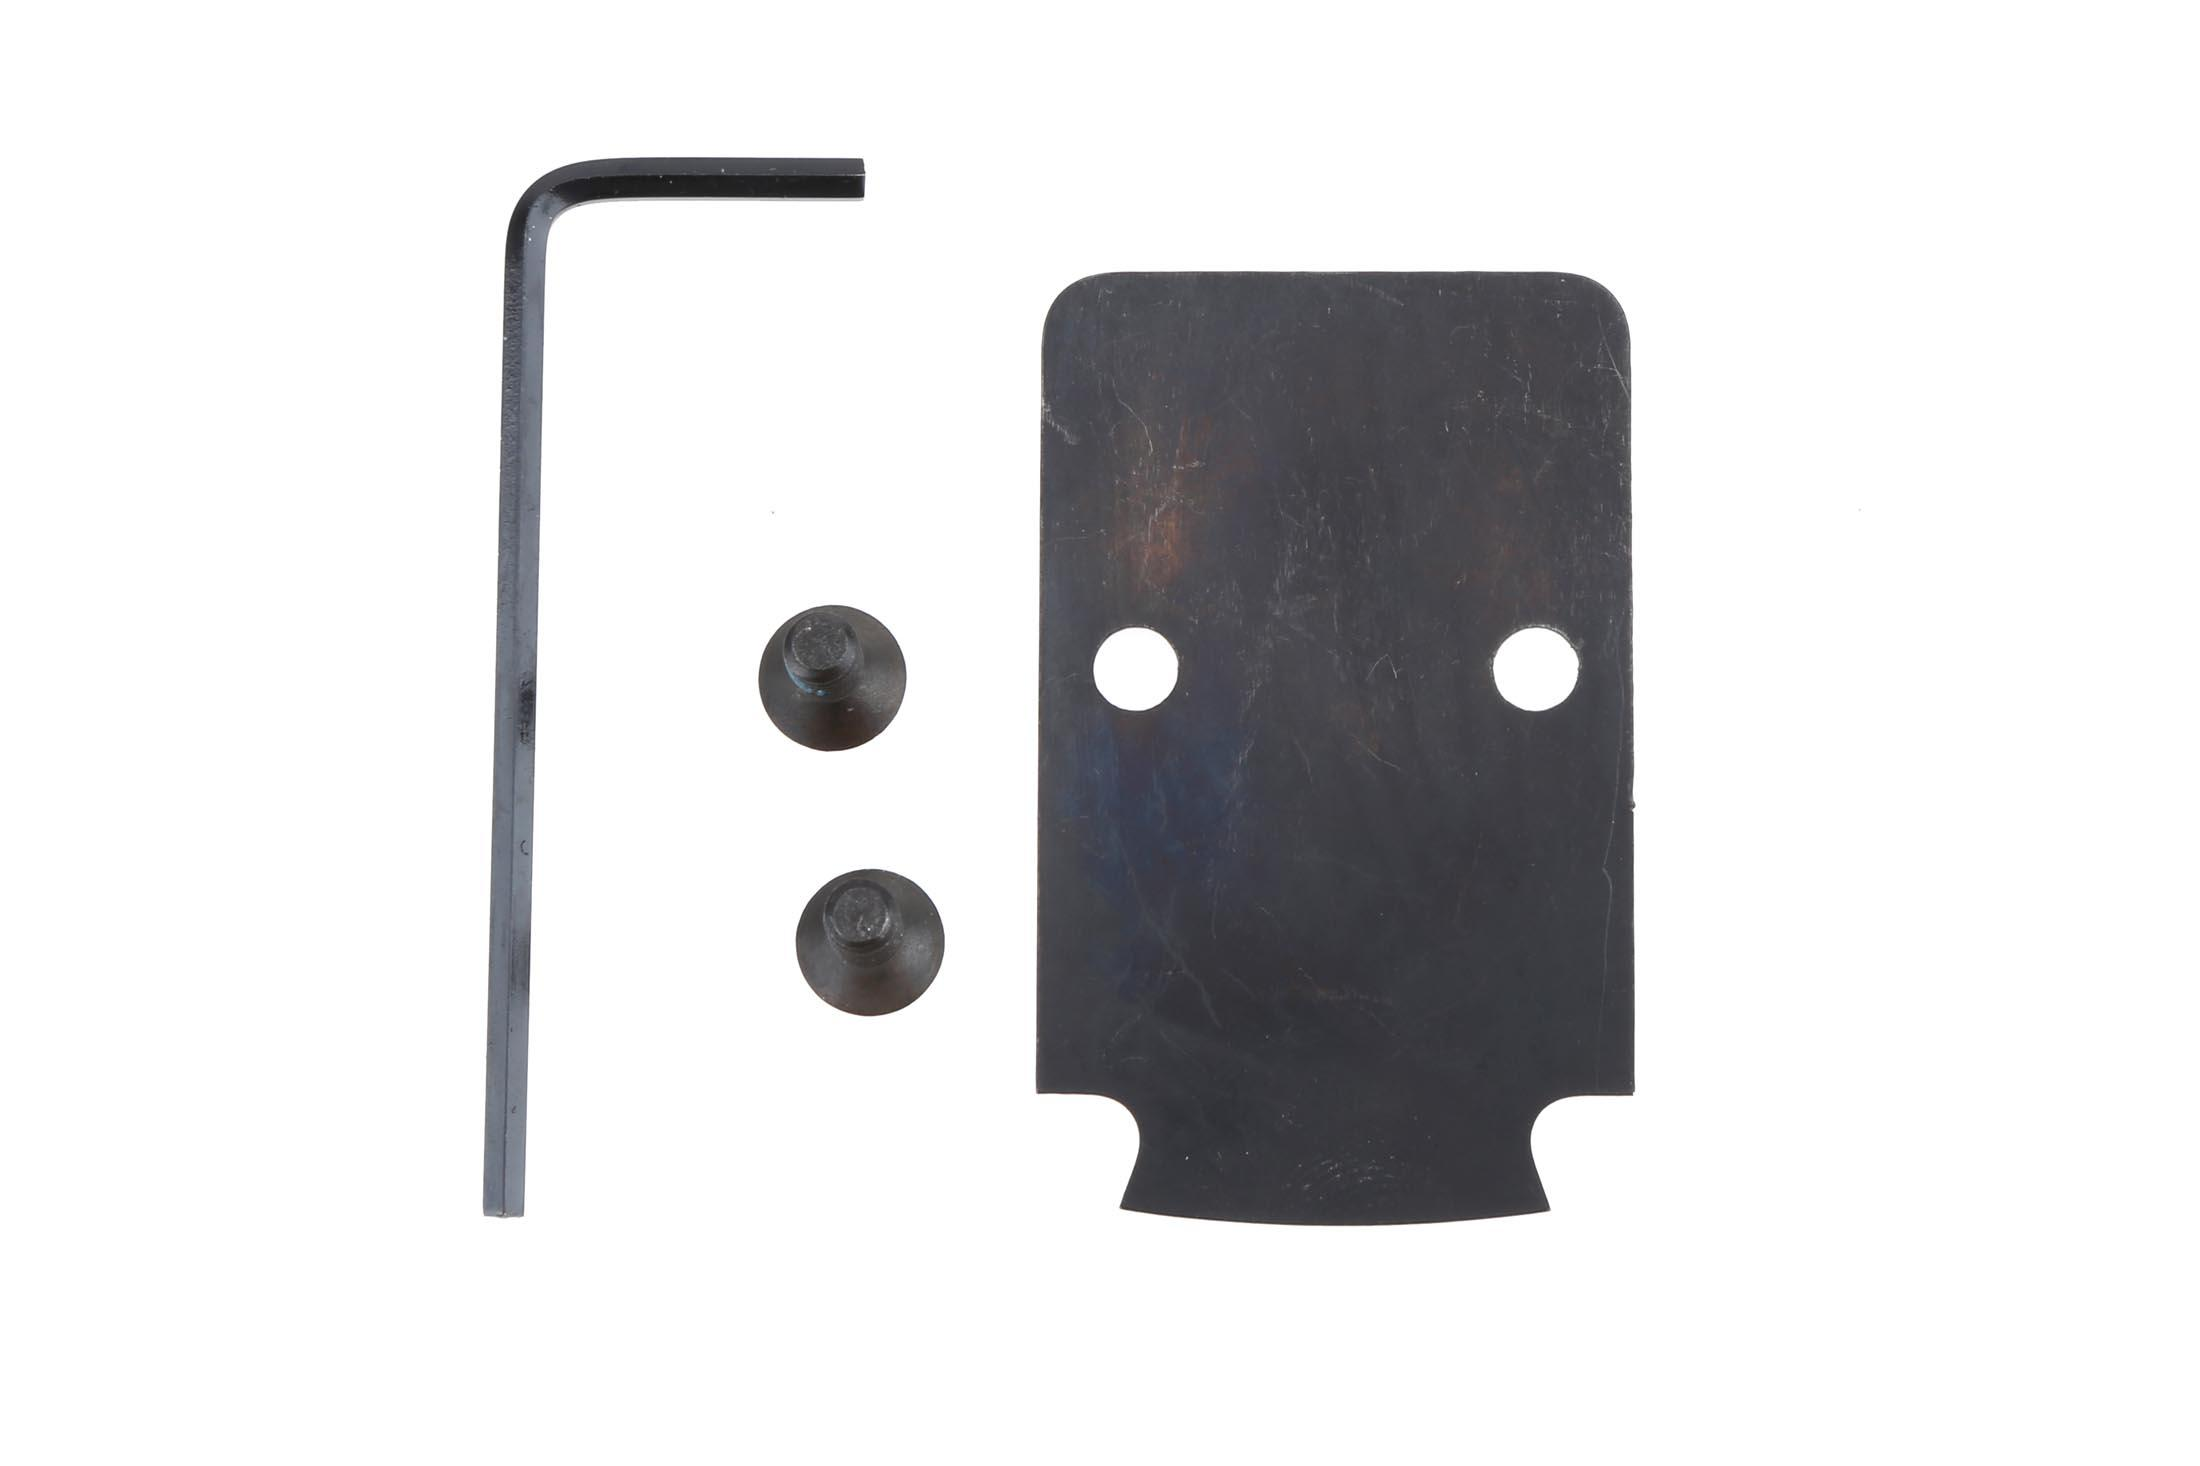 The Trijicon RMR Mounting plate kit for the Glock MOS system comes with screws and a hex wrench